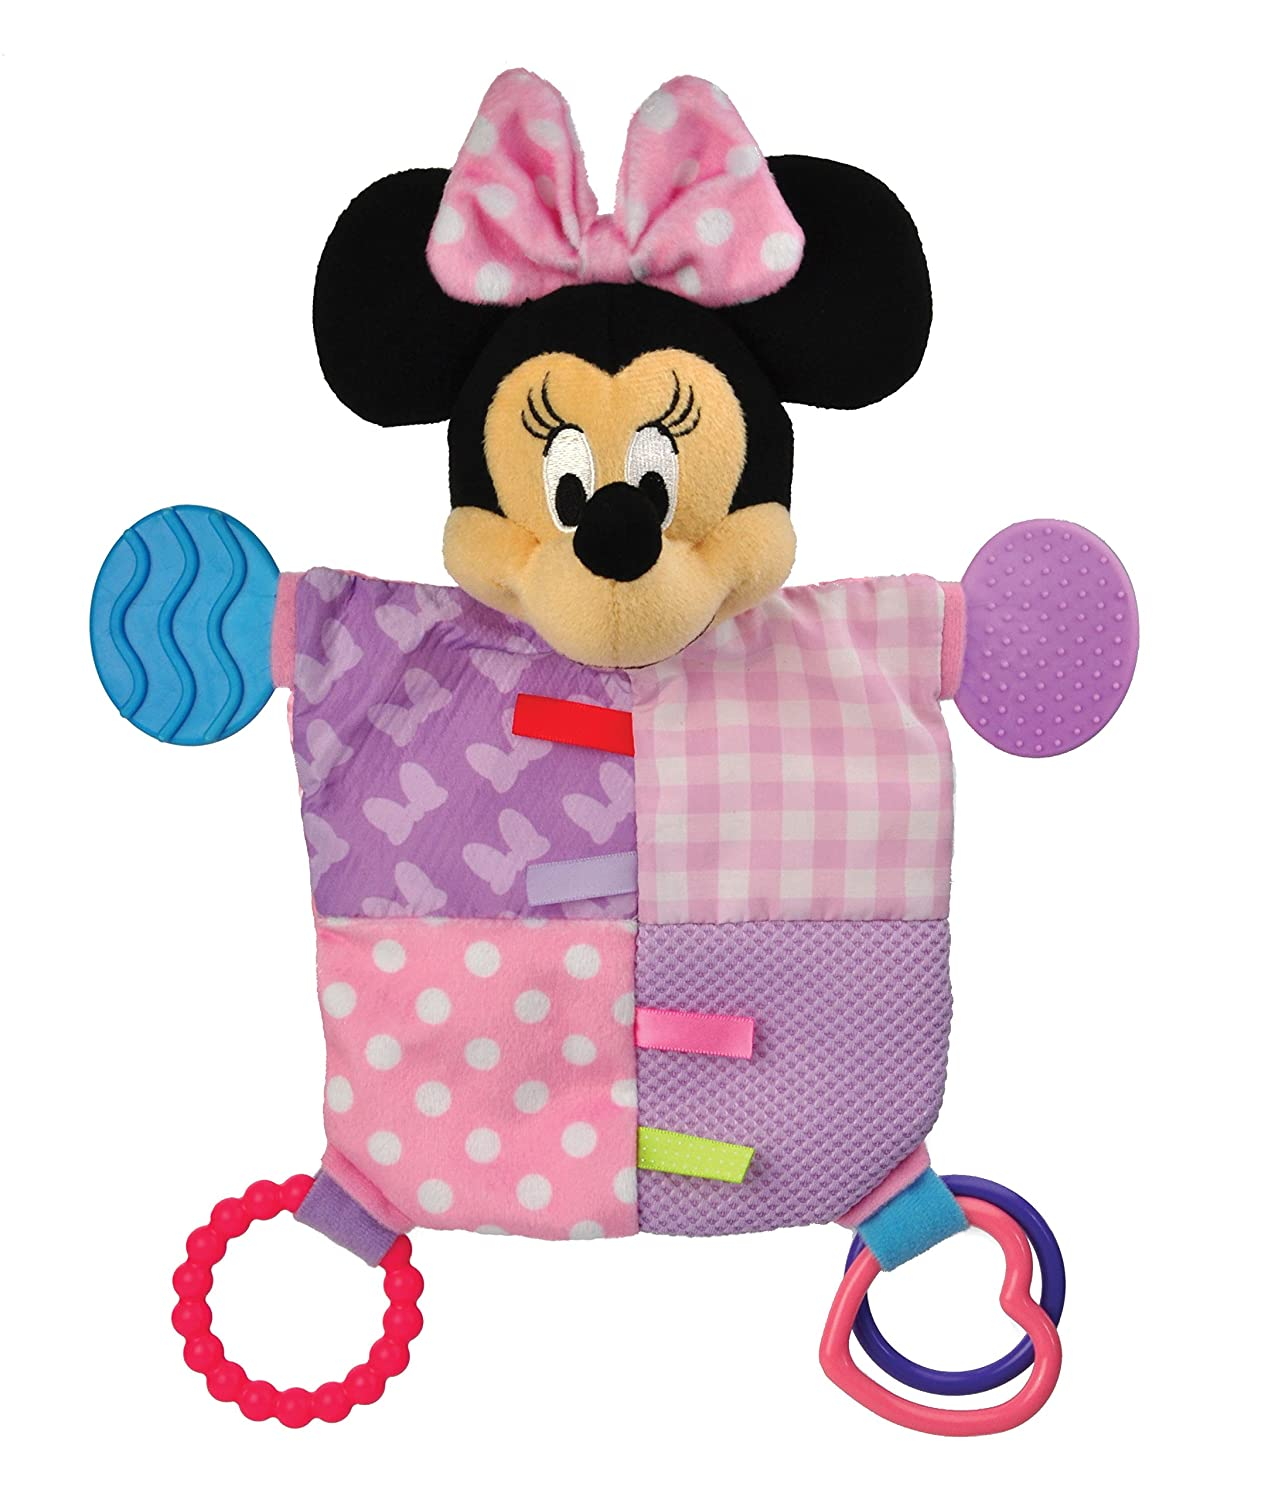 Disney Baby Mickey Mouse Plush Teether Blanket, 12 12 Kids Preferred 79355